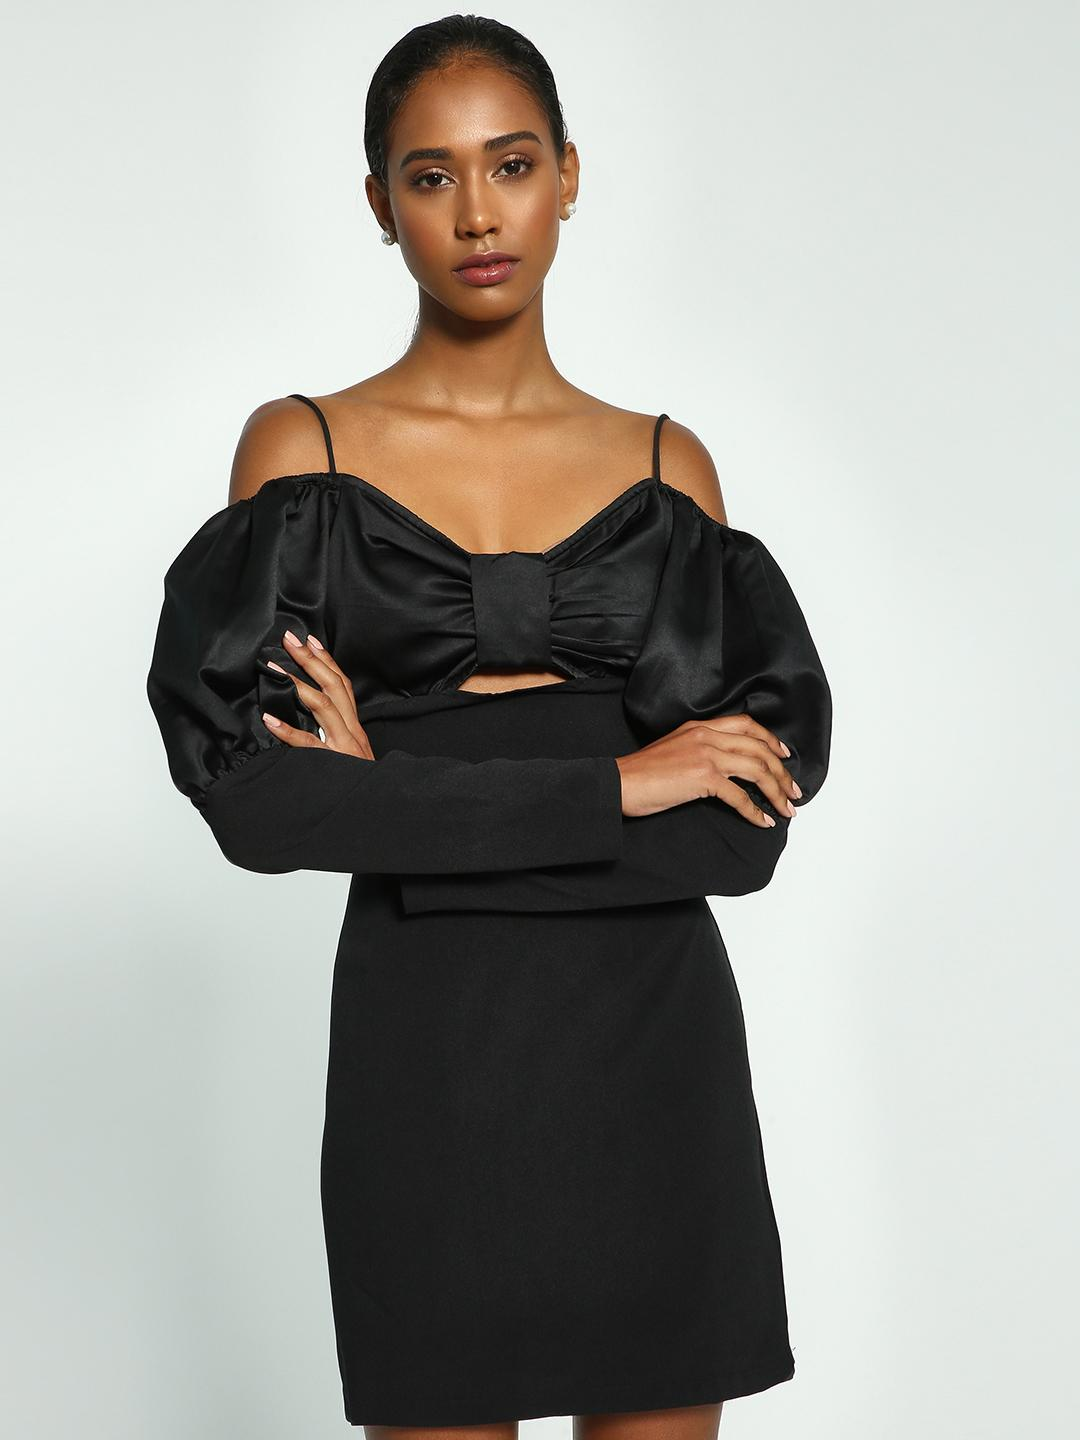 Ri-Dress Black Bow Mutton Sleeve Cold Shoulder Dress 1